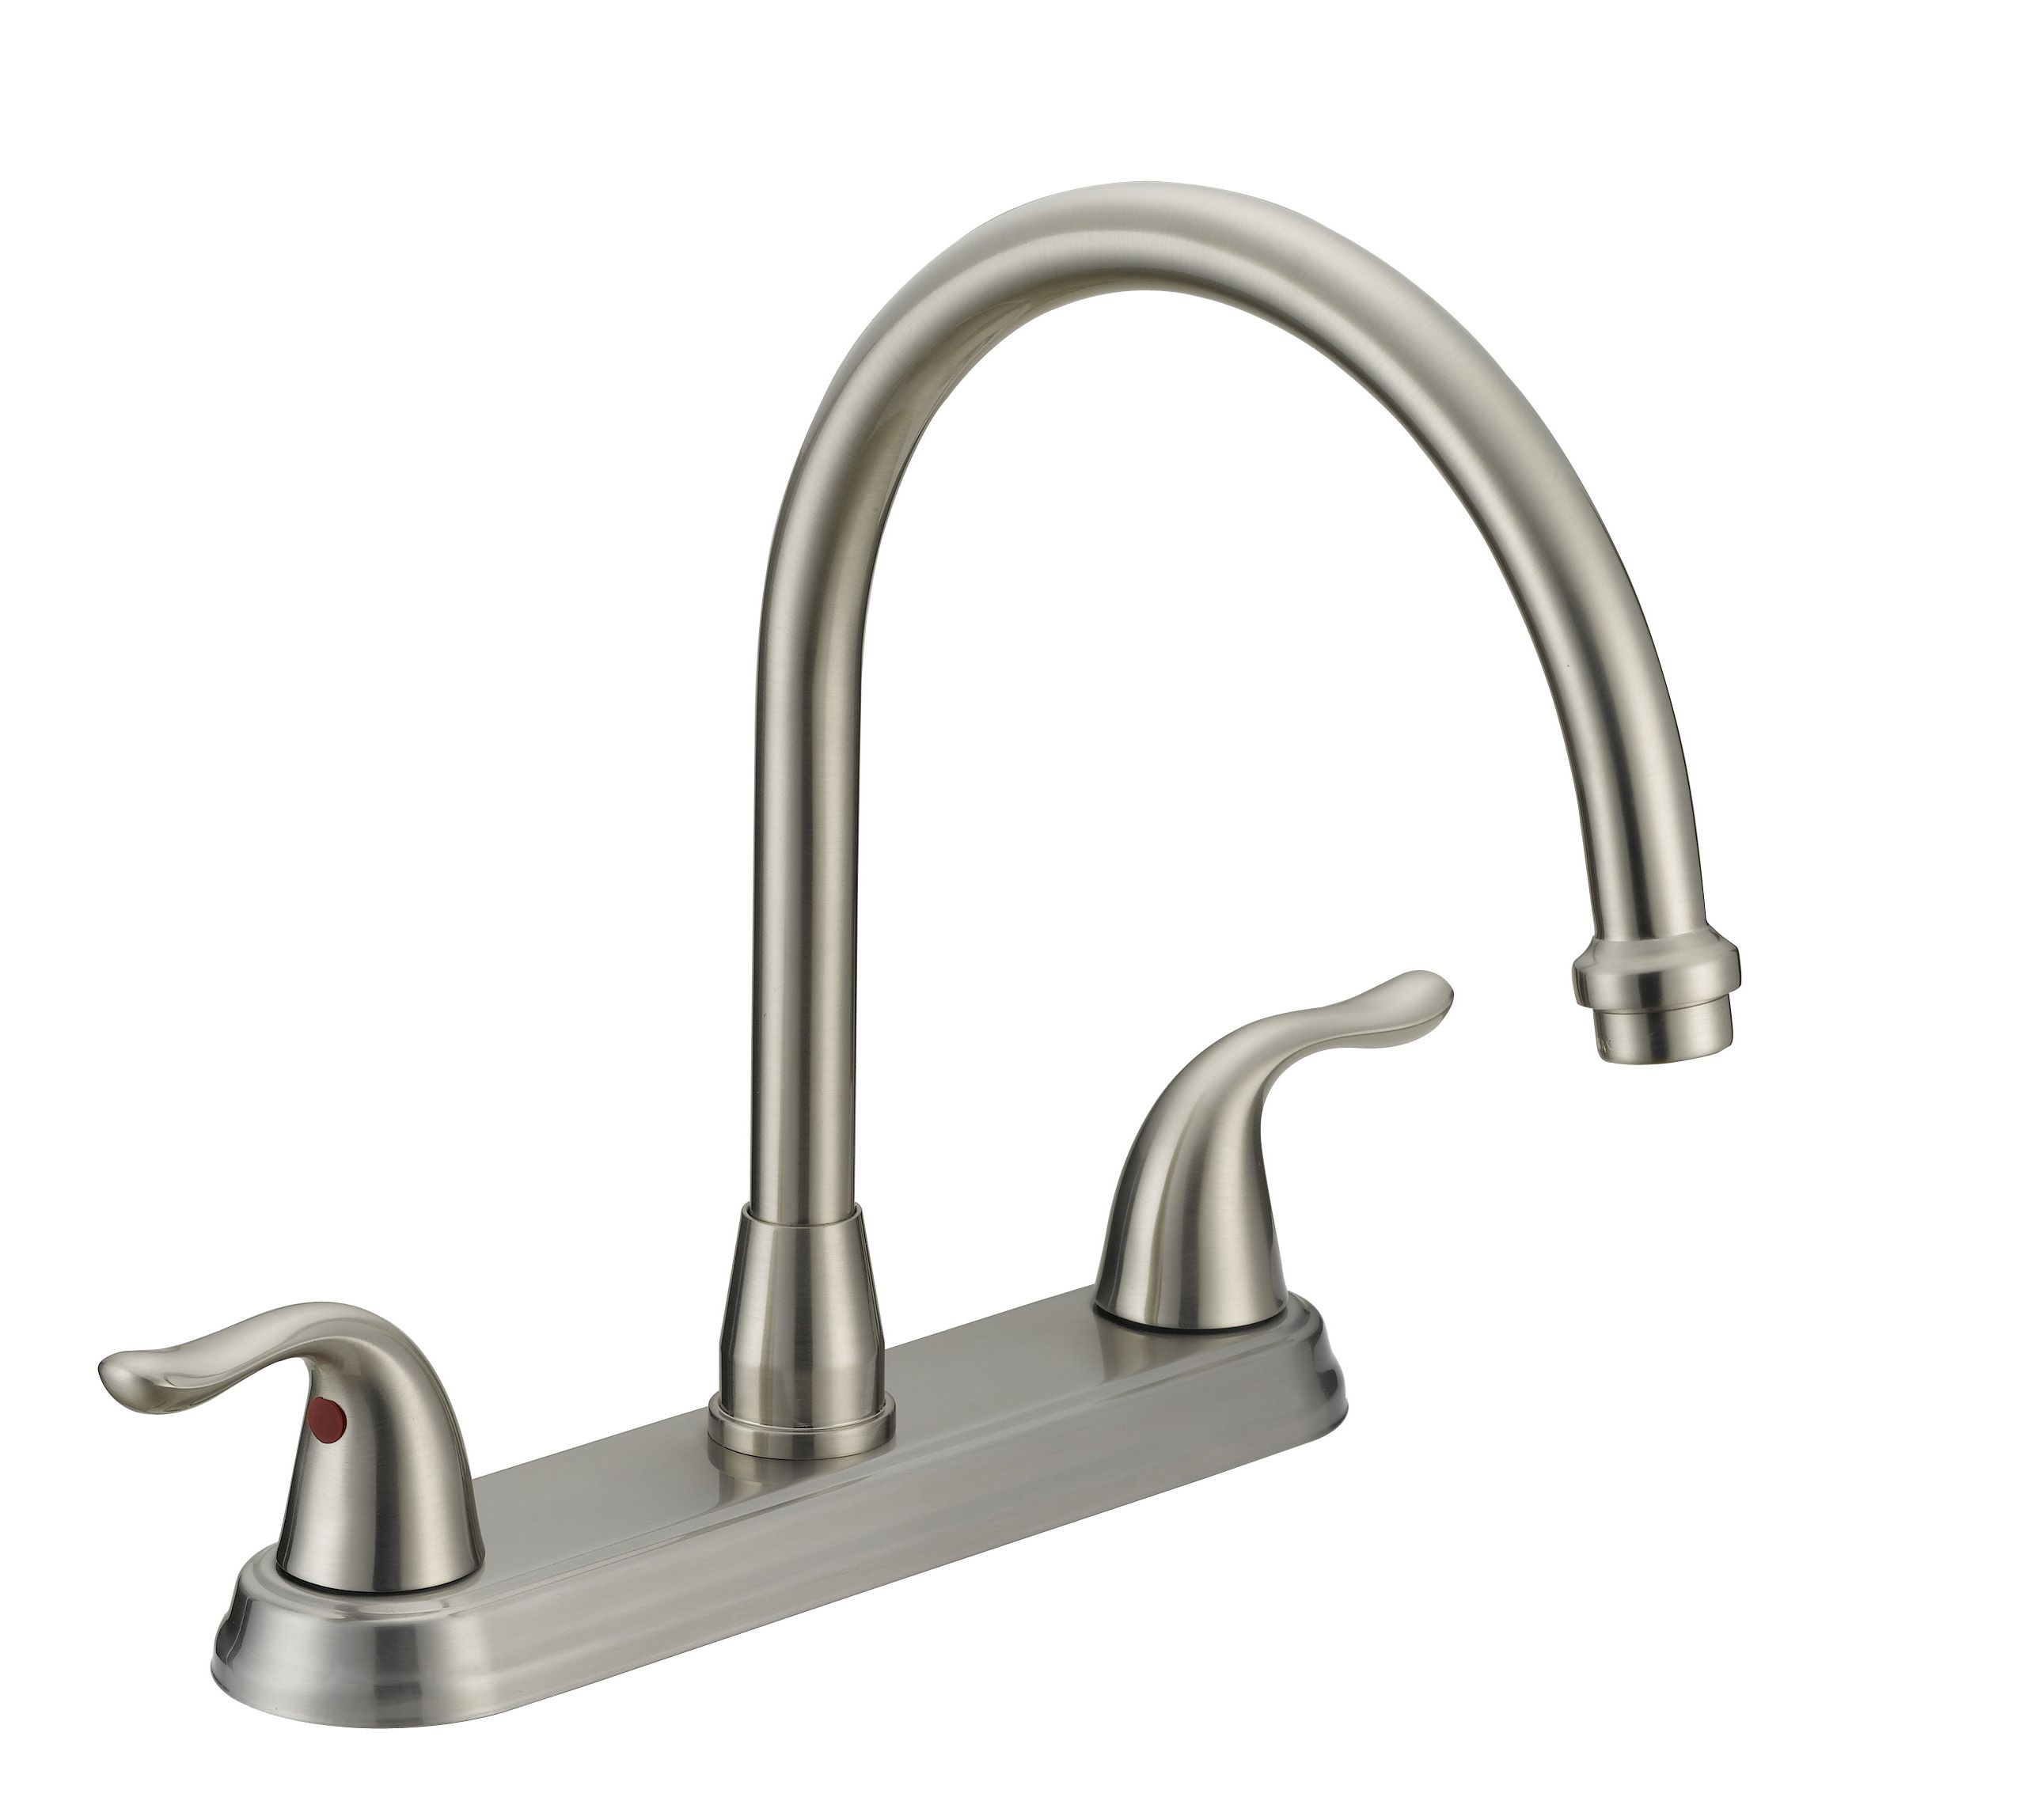 Matco Bl 250ss 2 Handle S S Kitchen Faucet L Spray Metal Lever